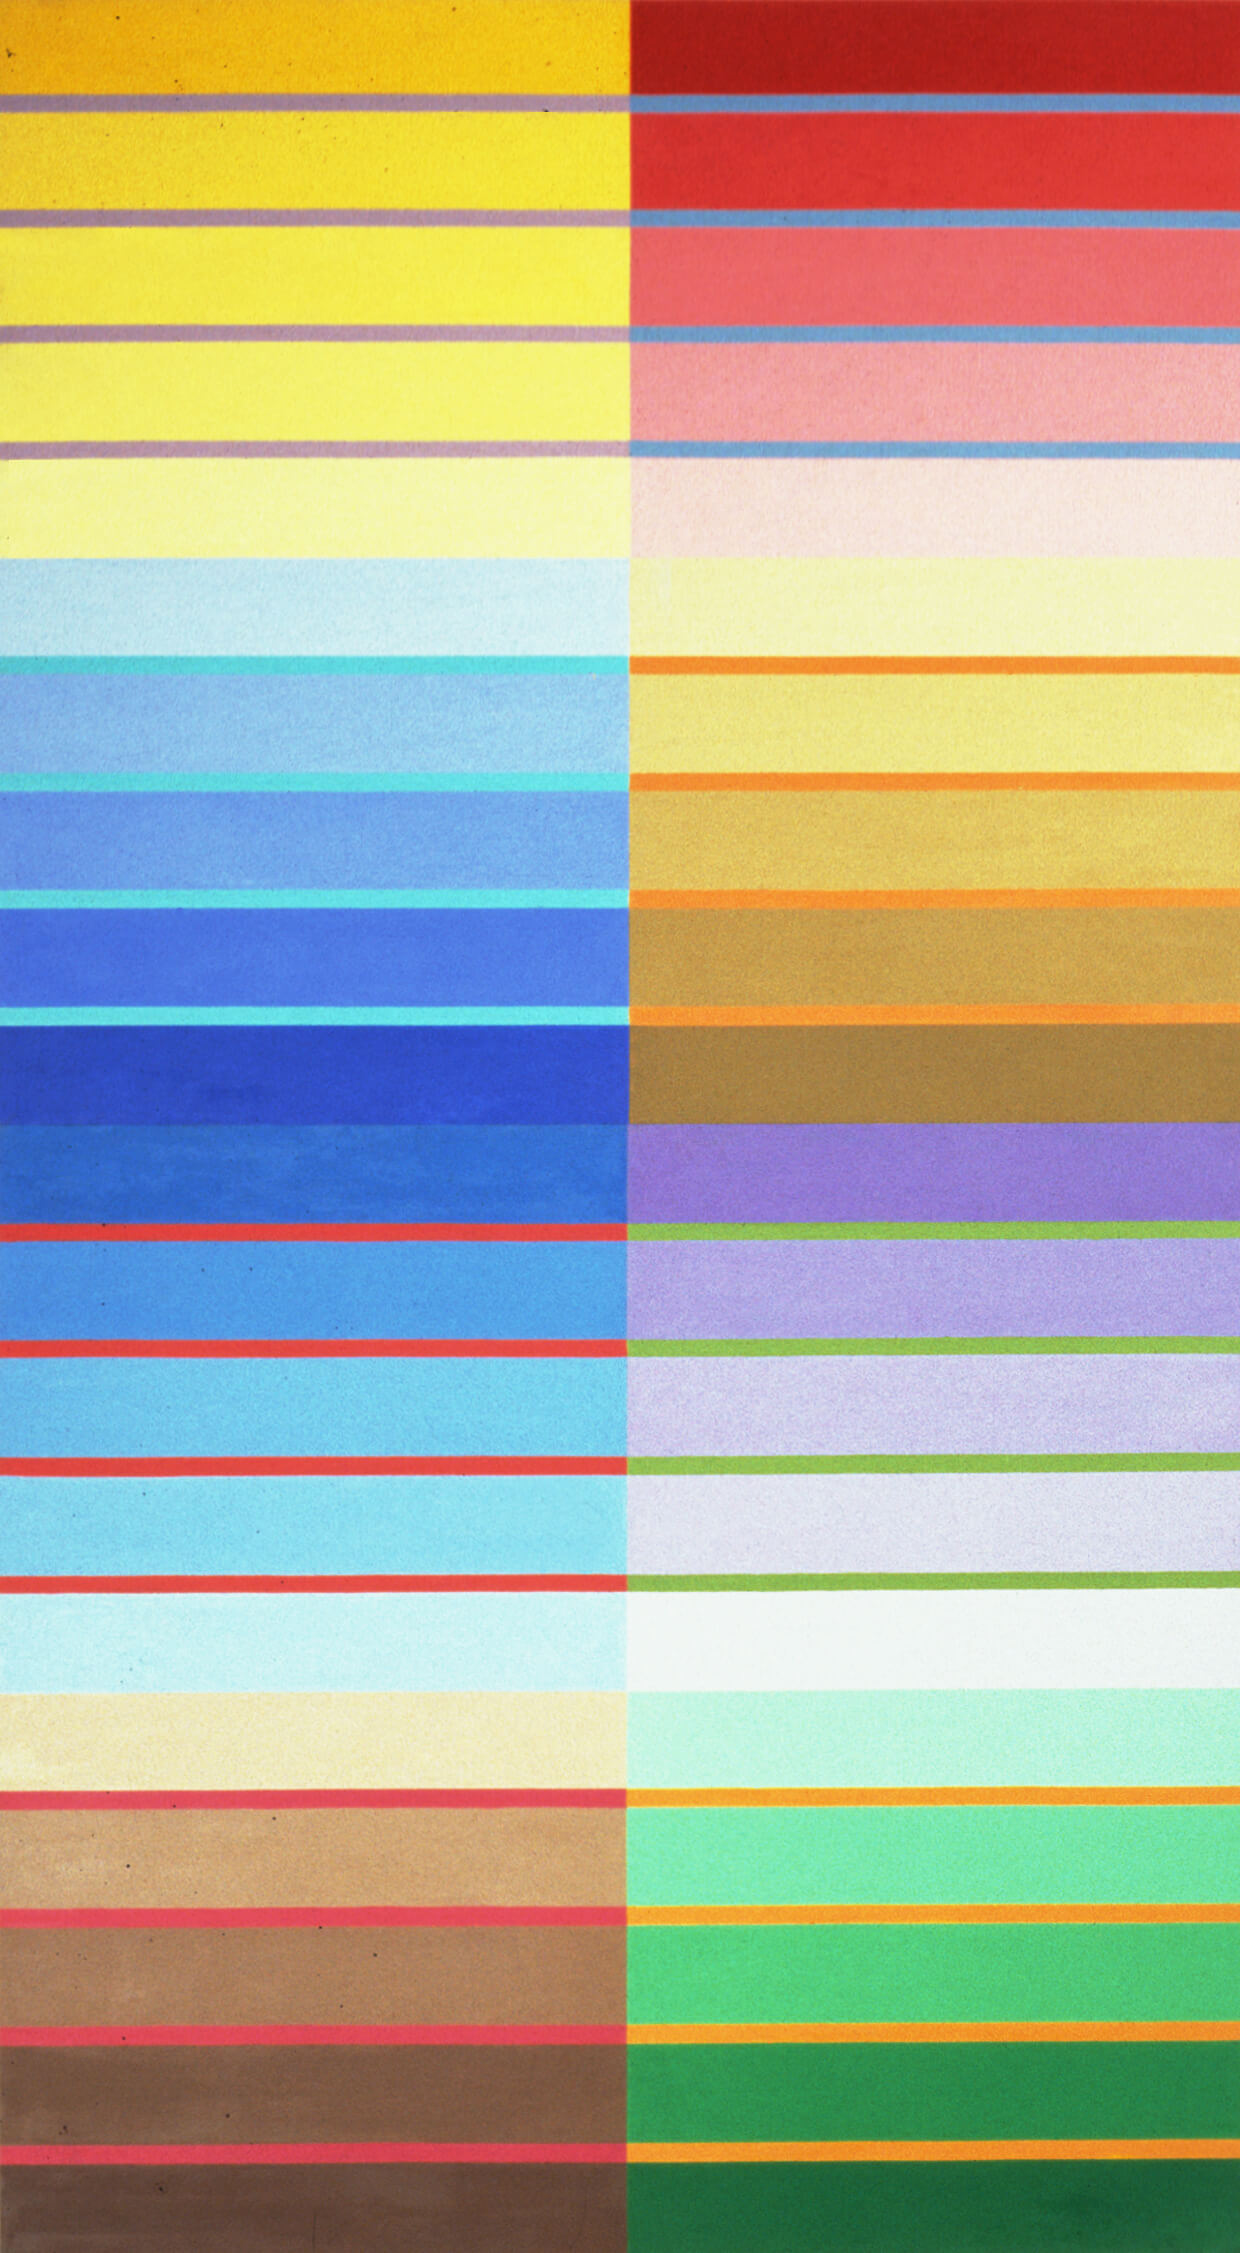 No title. Oil tempera on aluminum sheets, 234 x 132 cm, 2002